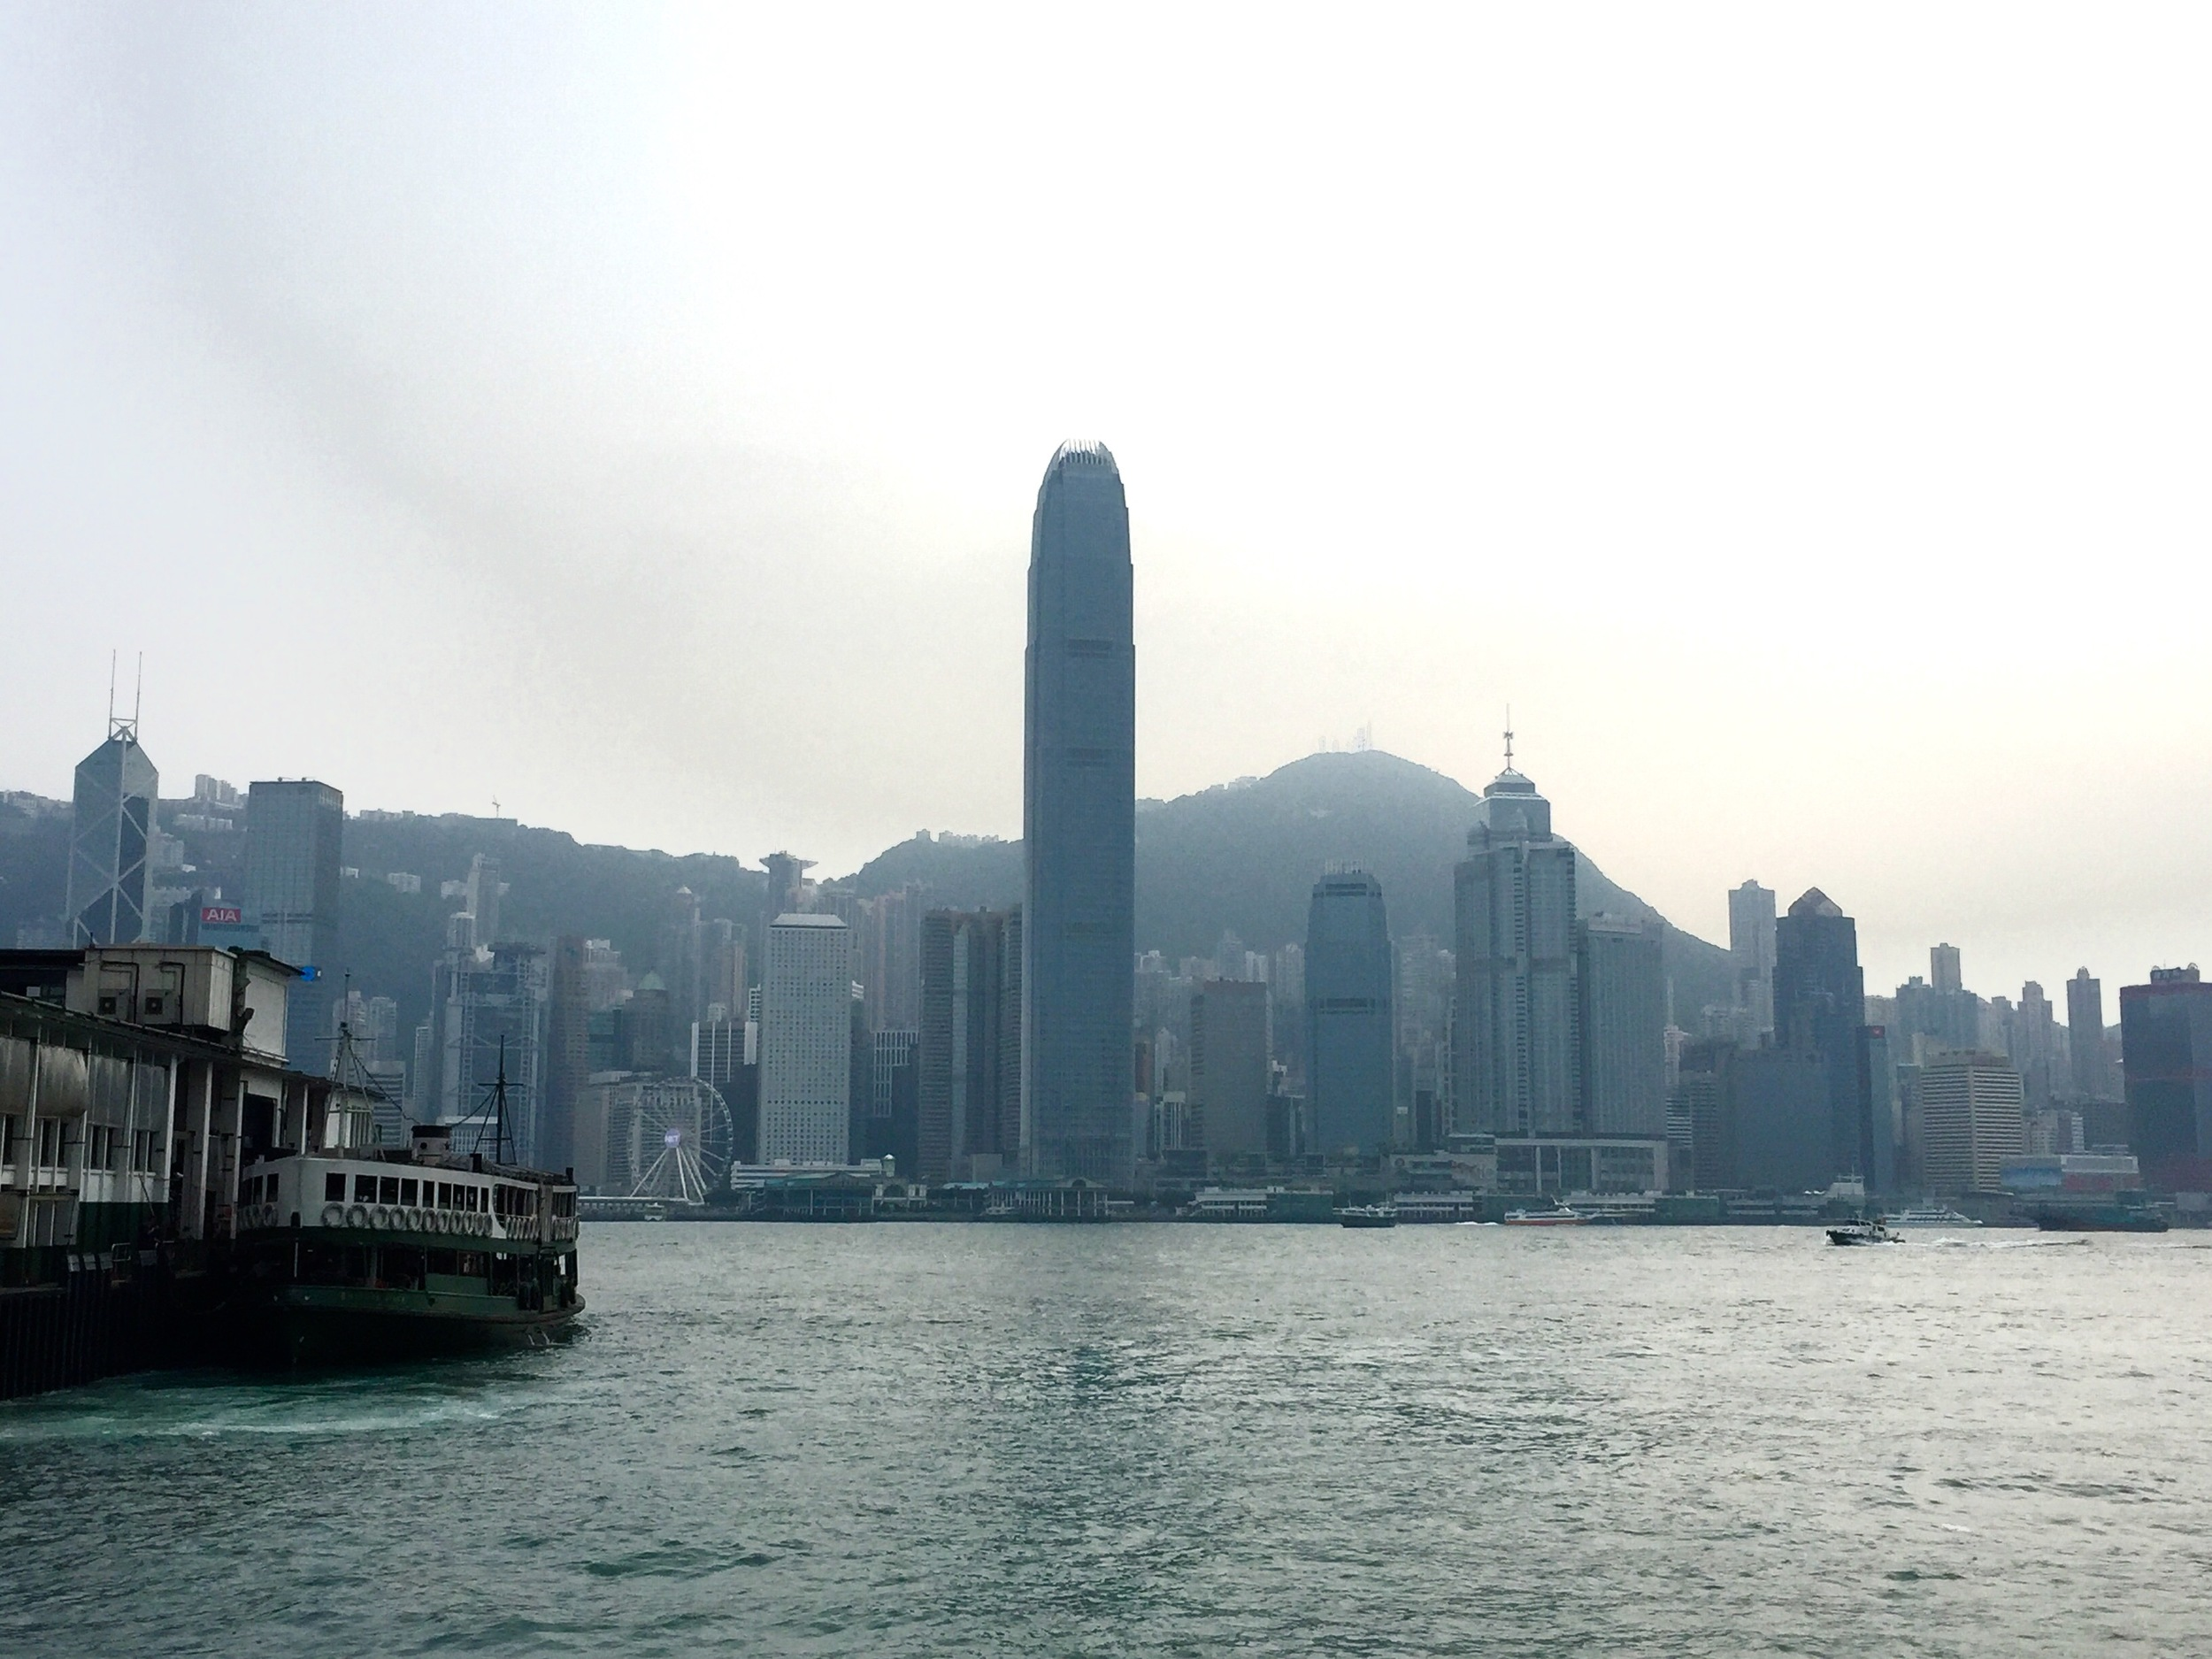 Kowloon Island looking back onto Hong Kong Island with the Star Ferry to the left of the photo.